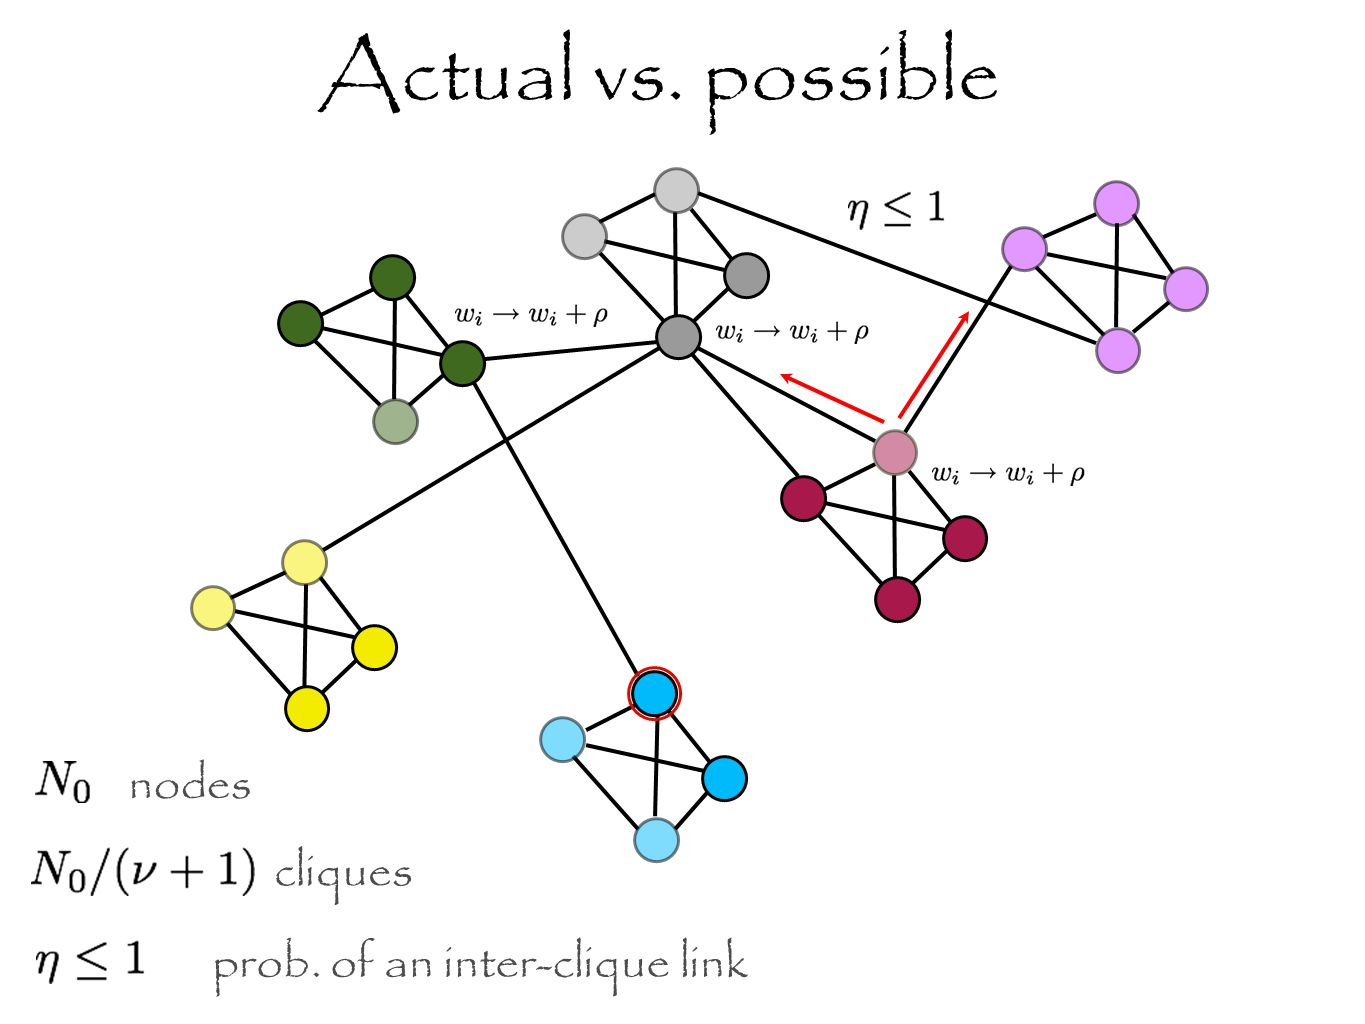 cliques nodes prob. of an inter-clique link Actual vs. possible